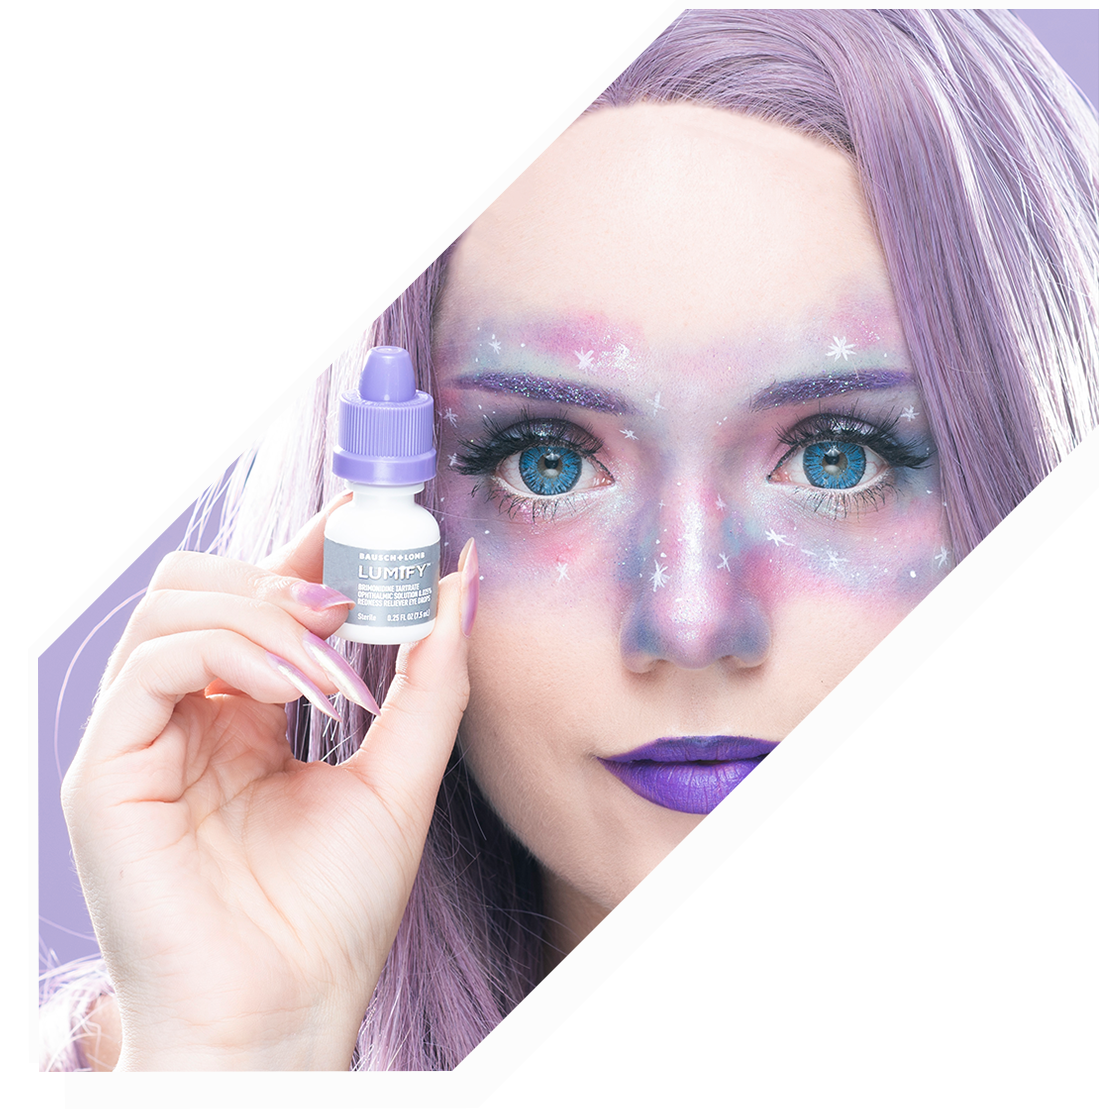 Close up of a girl in a purple wig with purple starry makeup on holding a bottle of Lumify Eye Redness Relief drops